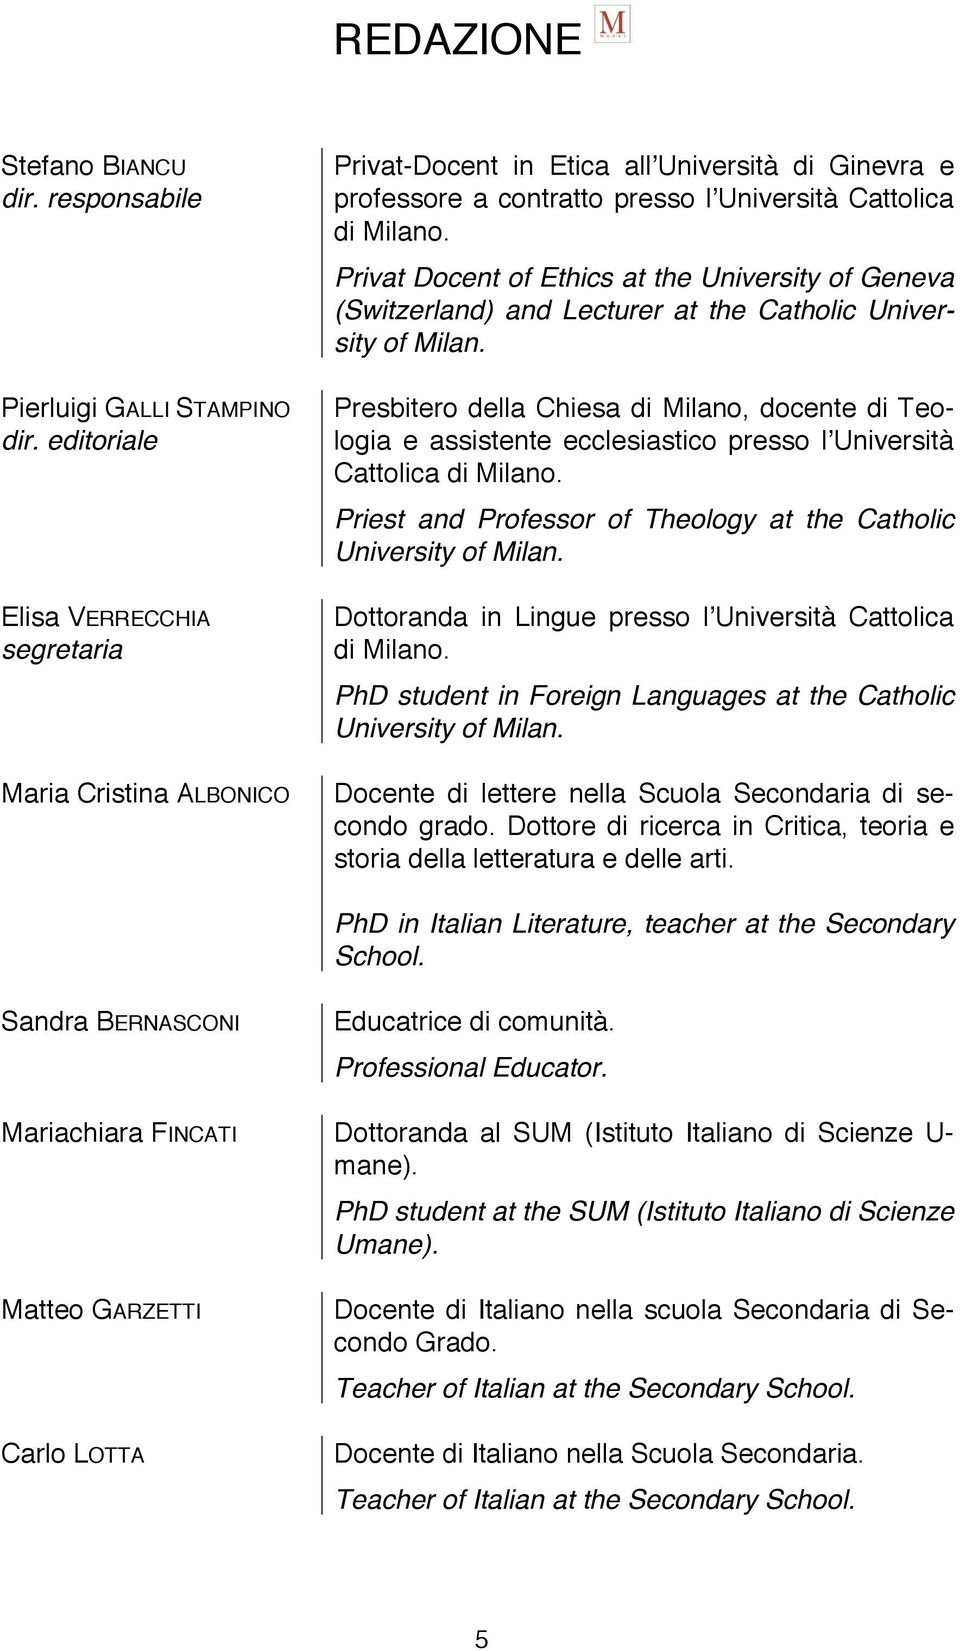 University of Geneva (Switzerland) and Lecturer at the Catholic University of Milan.